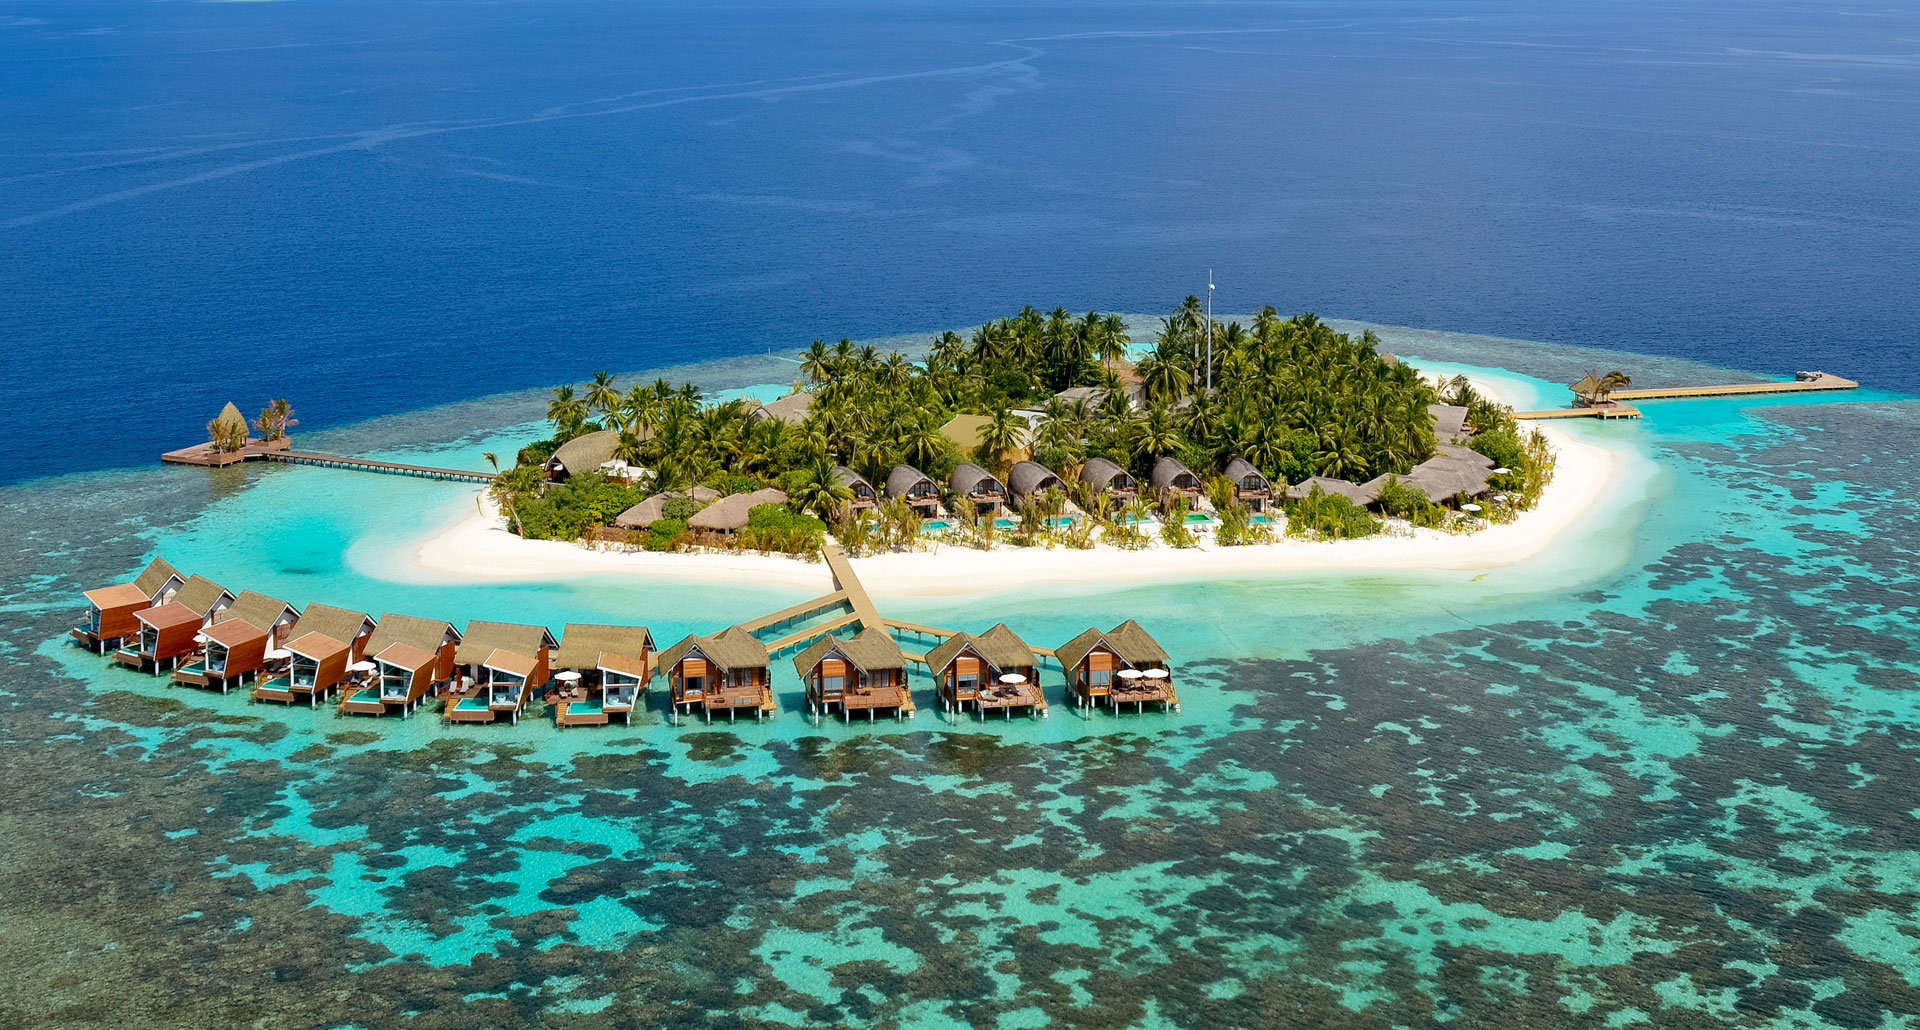 Kandolhu Island - boutique hotel in the Maldives